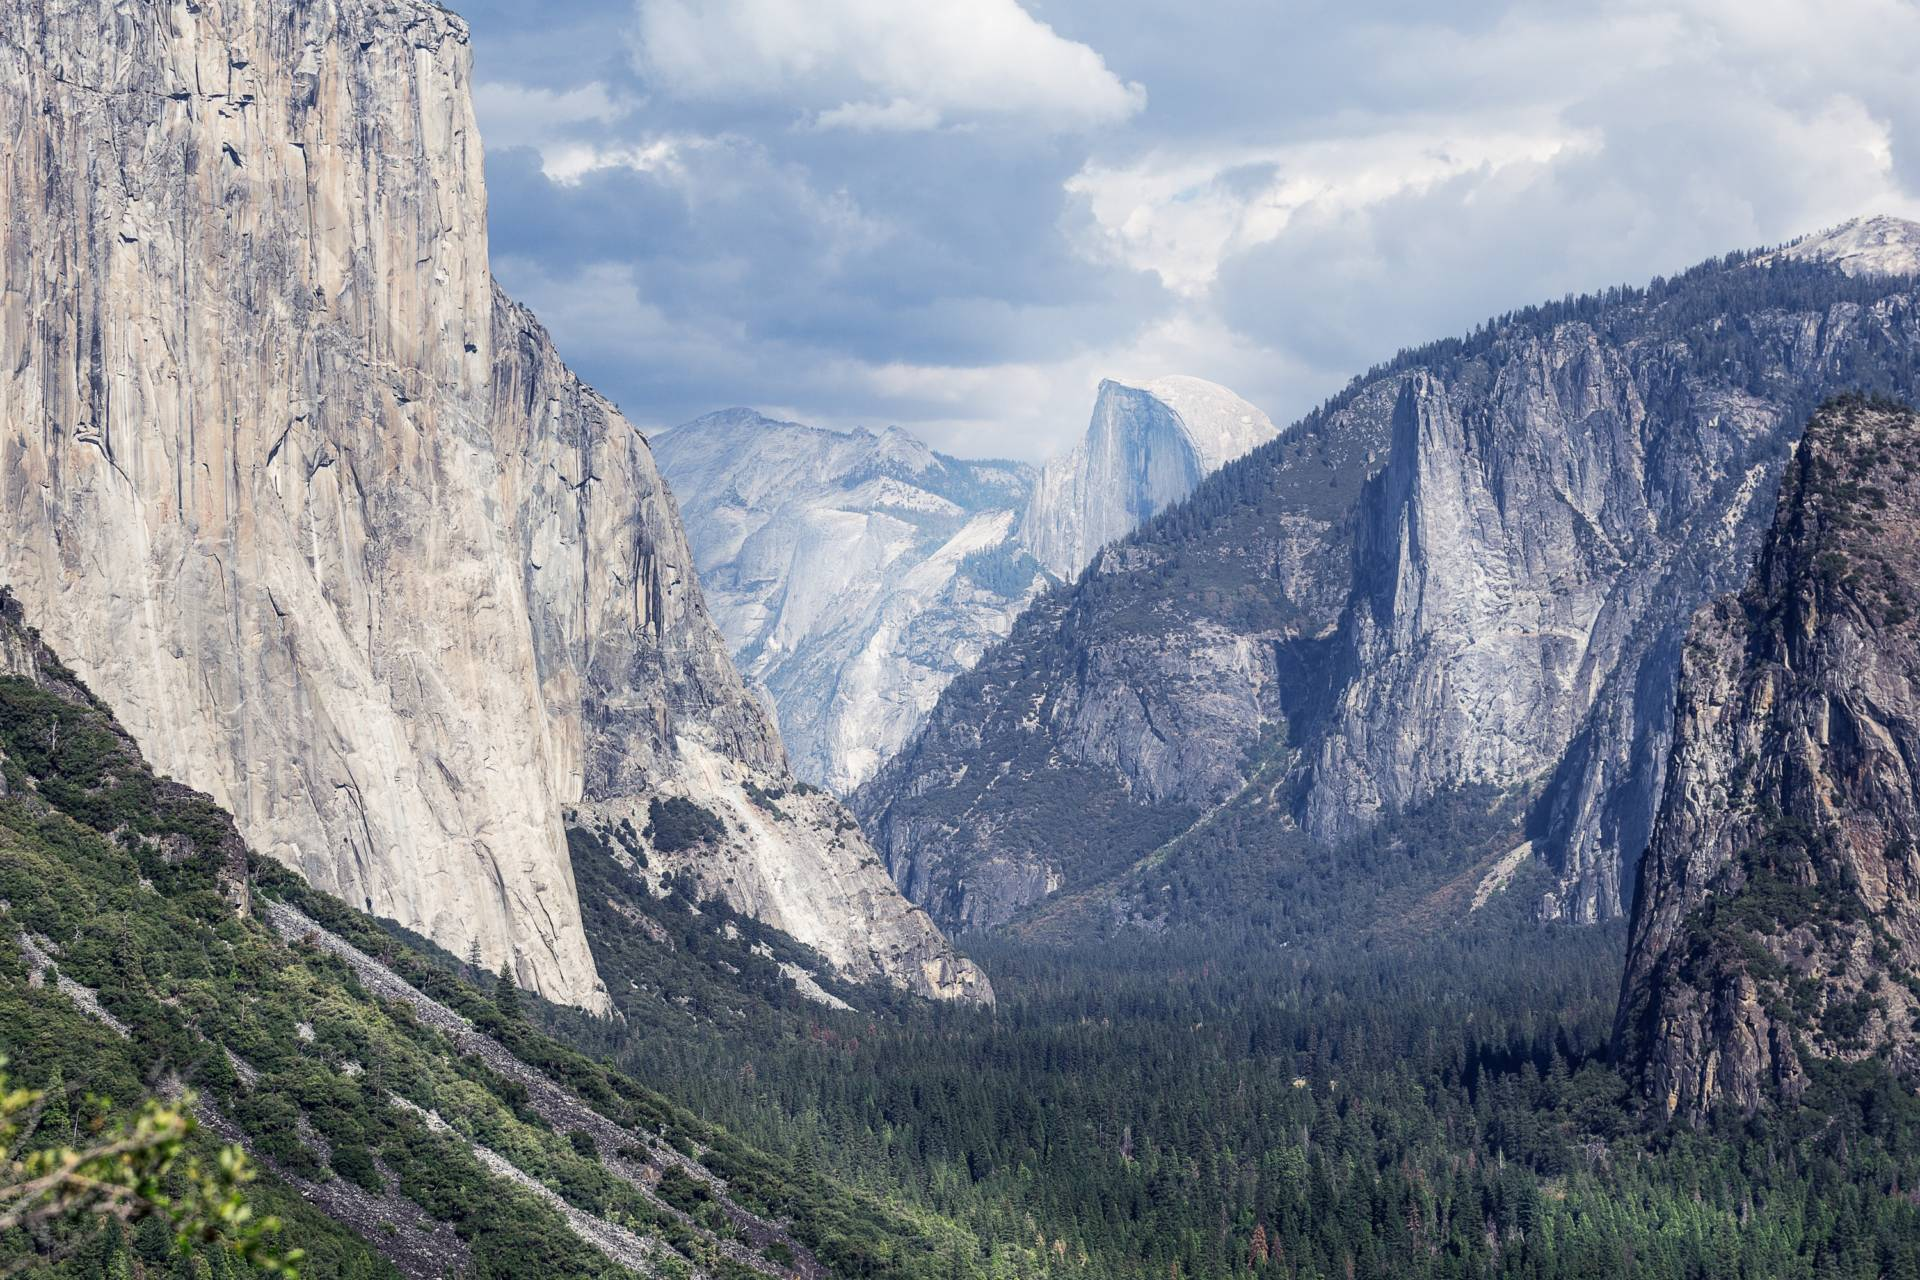 Yosemite National Park, as seen from Tunnel View. Vladimir Kudinov/Pexels